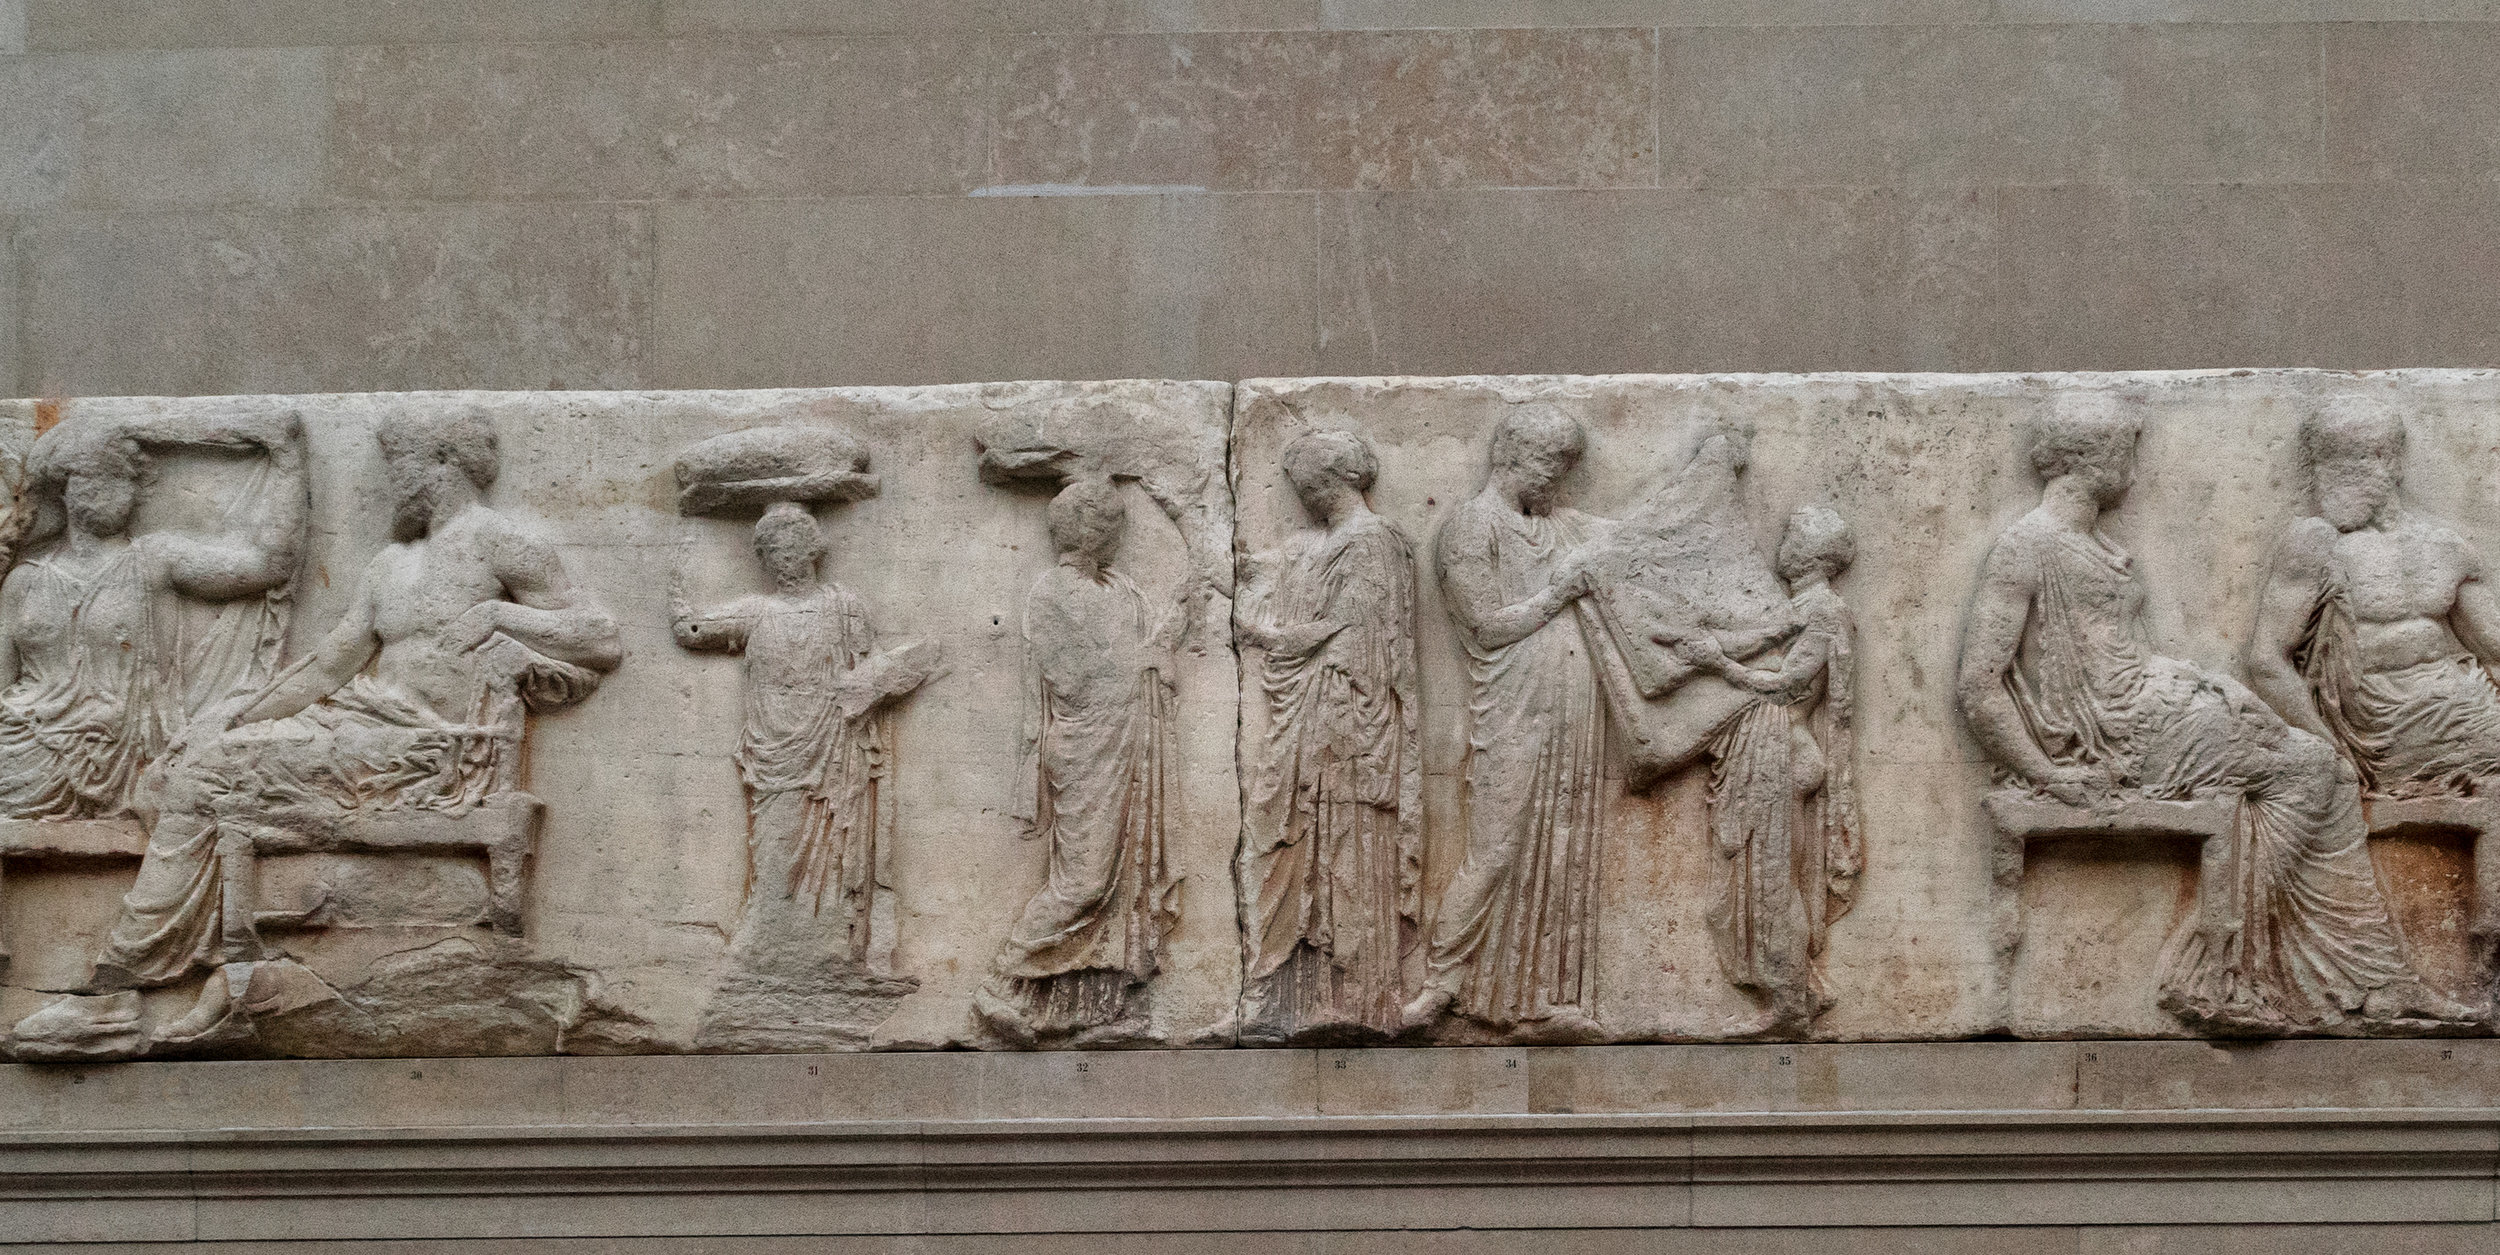 Egisto Sani,  The Parthenon - XIV East Frieze , 14 August 2014. A picture of sculpted individuals on the inner columns of the Parthenon.